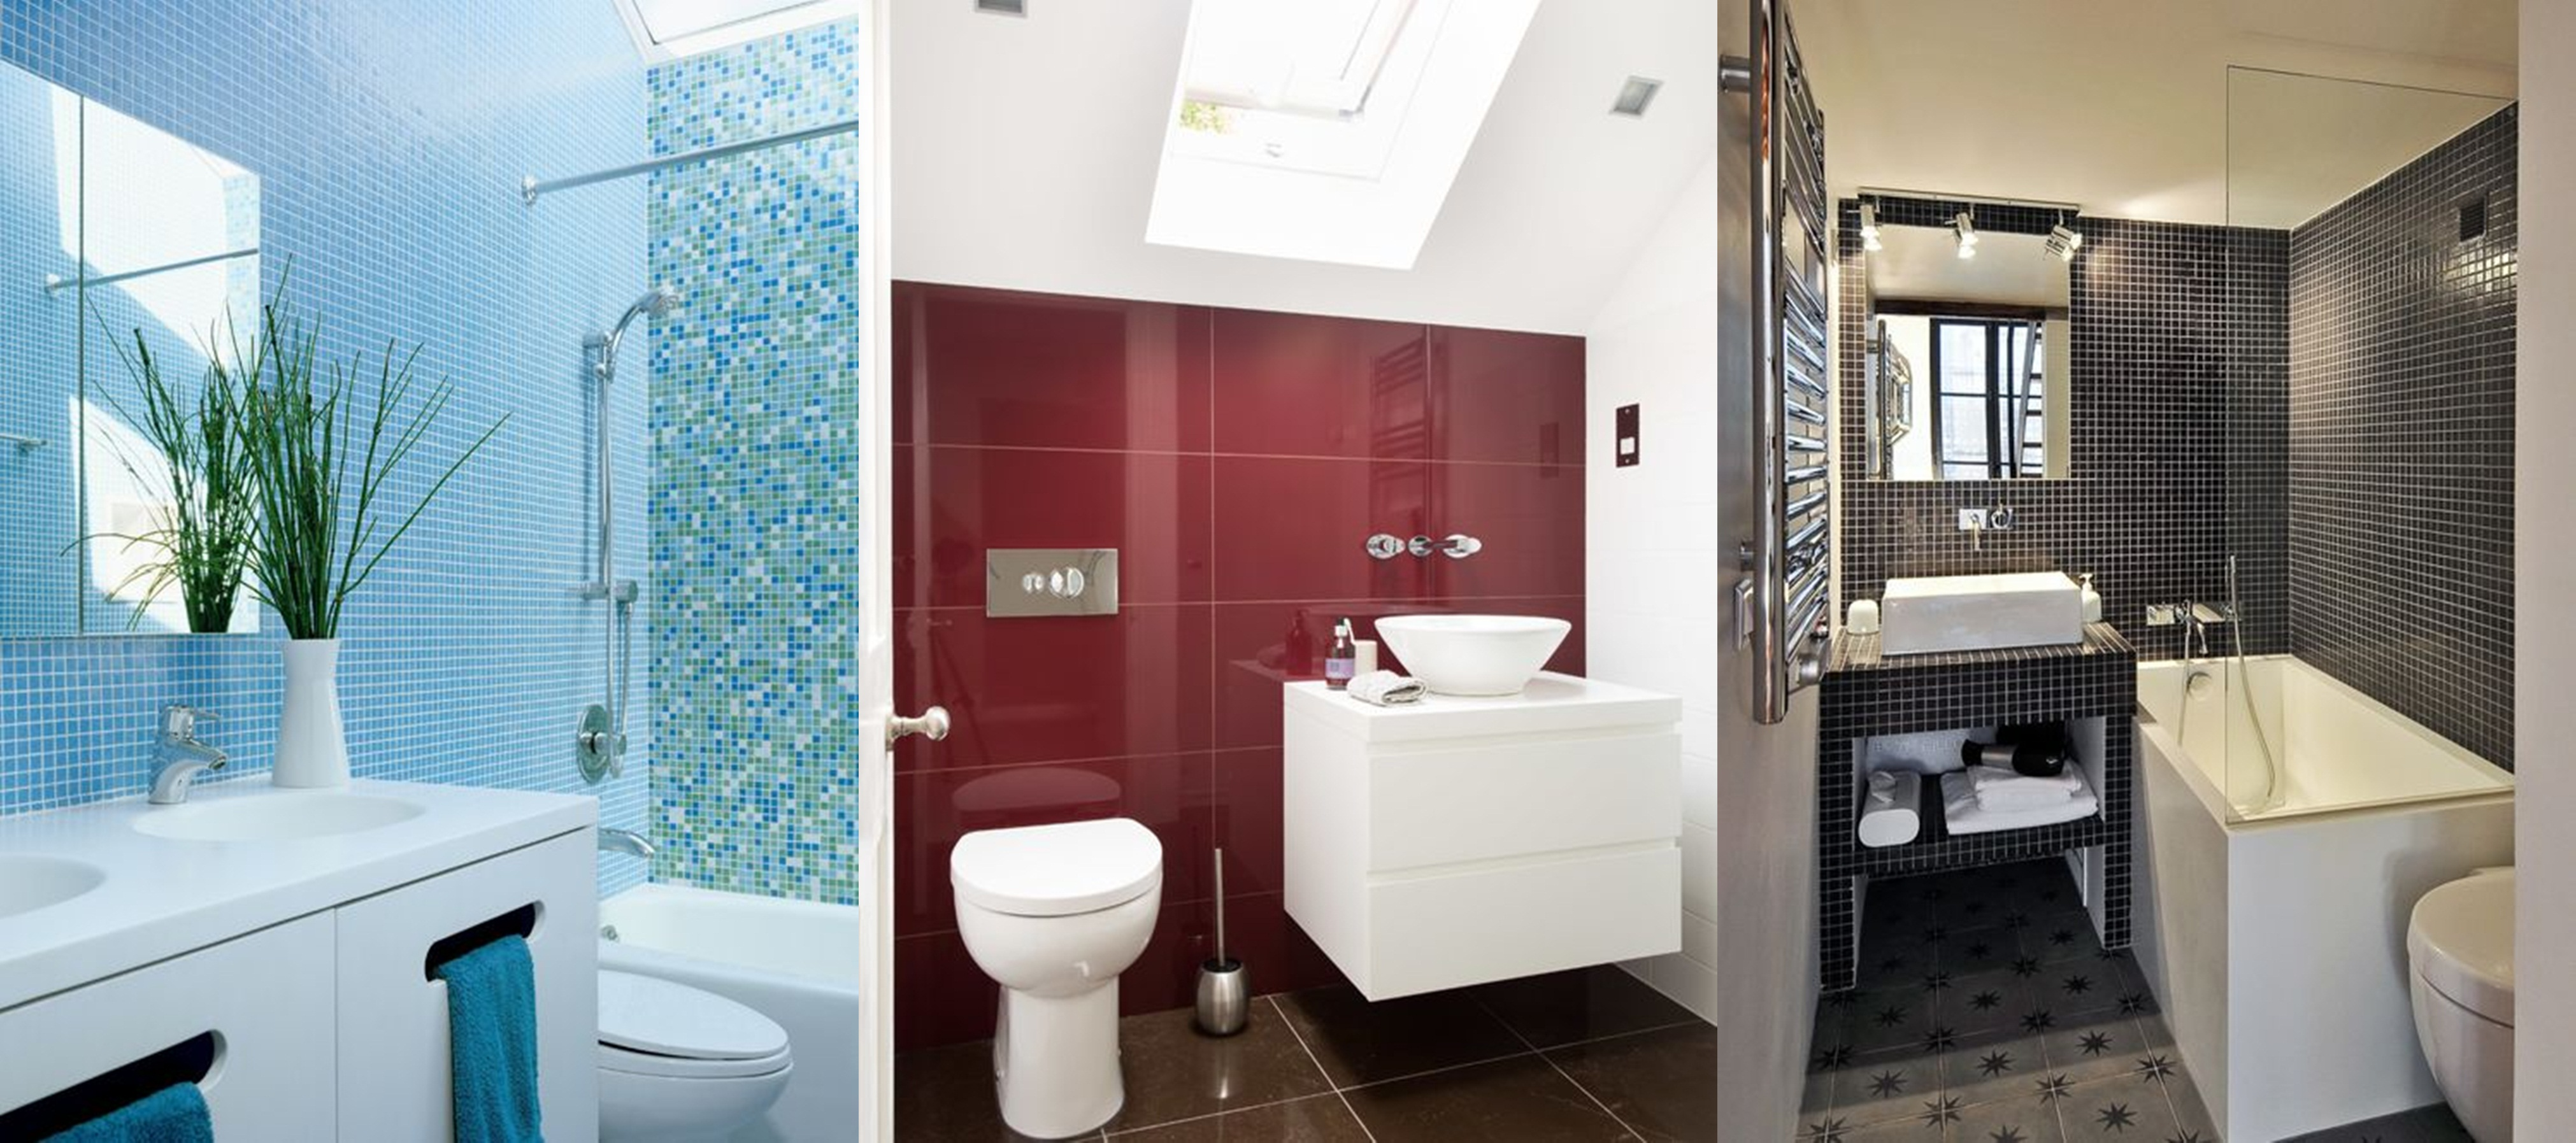 61 Contemporary And Modern Bathroom Tile Ideas To Design New Interior Looks